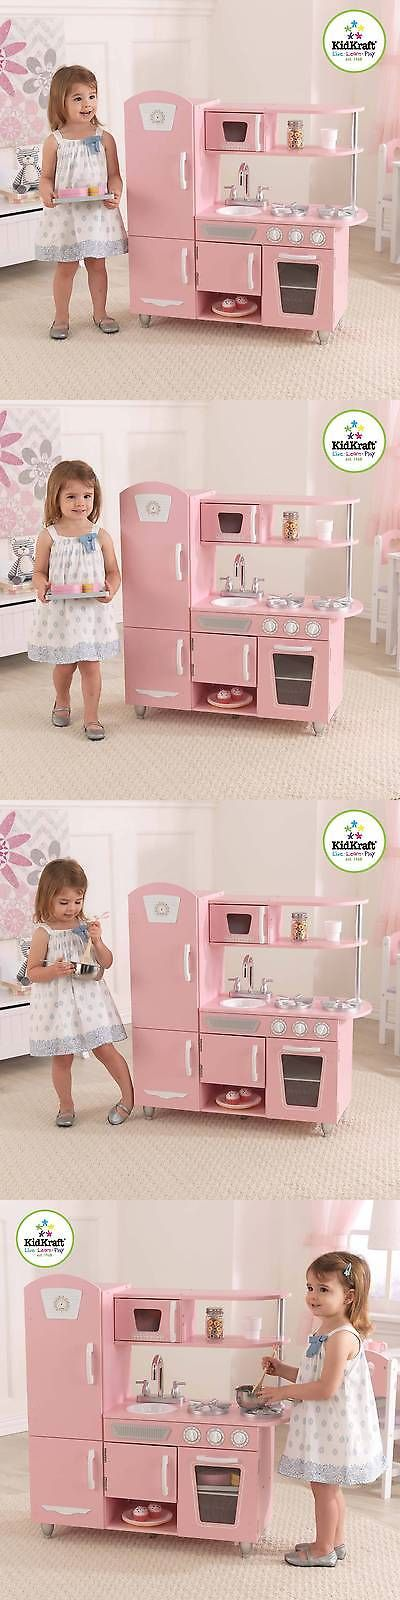 Kitchens 158746: Kidkraft Vintage Wooden Play Kitchen, Pink -> BUY IT NOW ONLY: $104.69 on eBay!